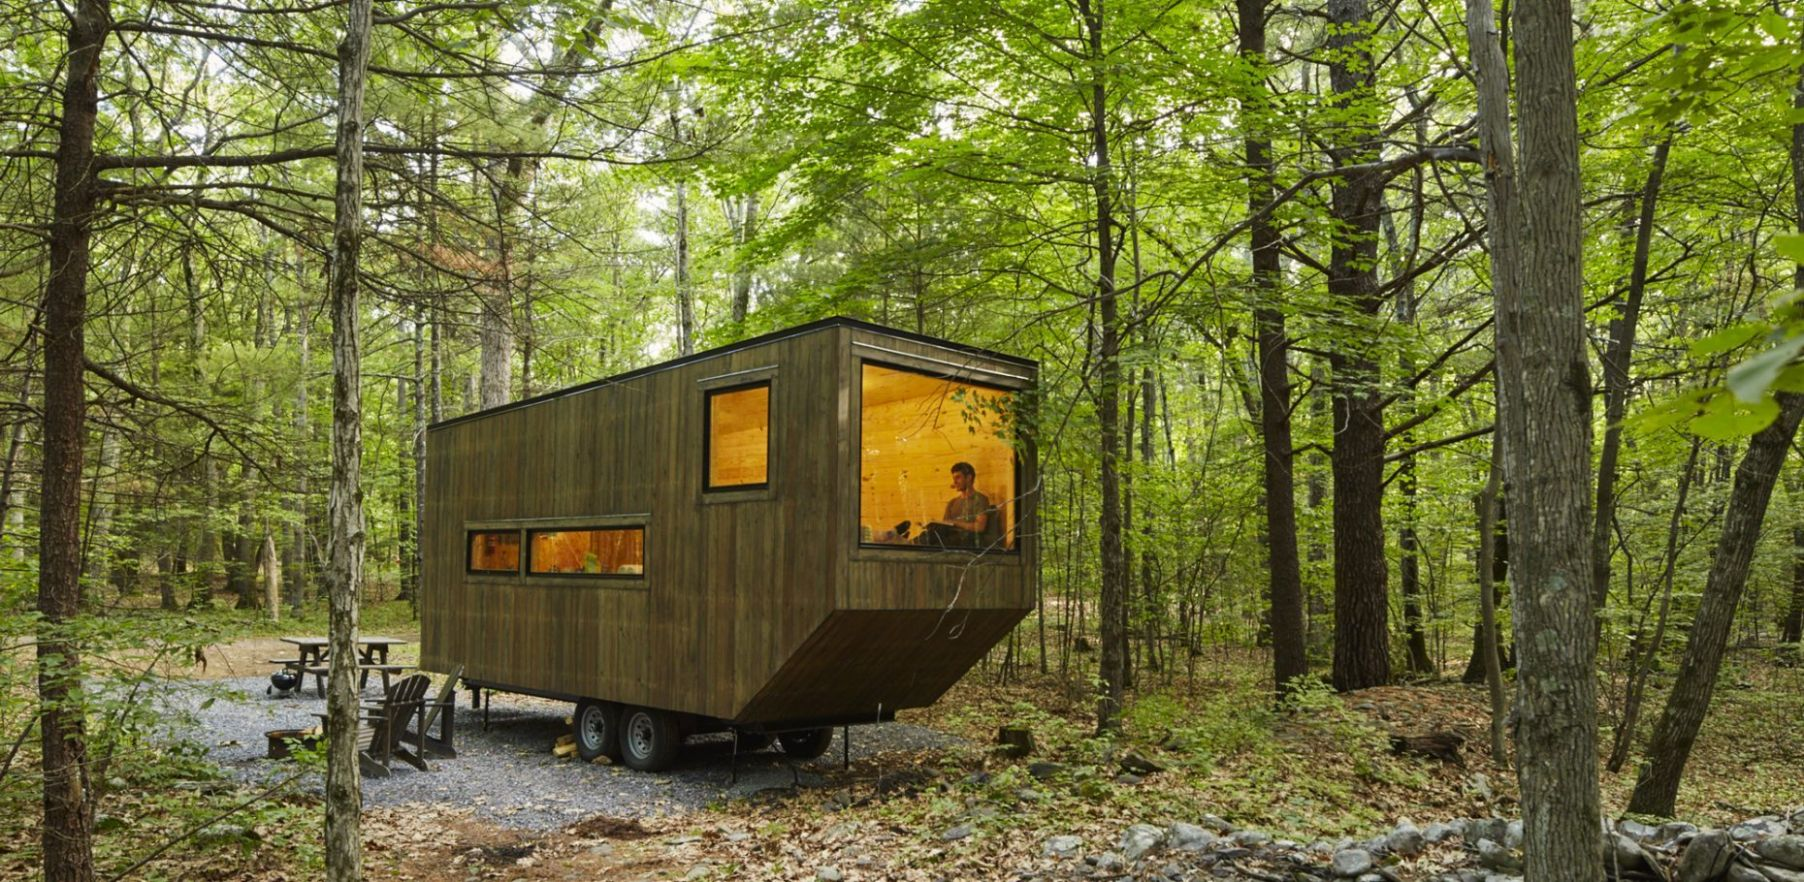 11 Very Different Ways to Finance the Construction of Tiny Houses ..